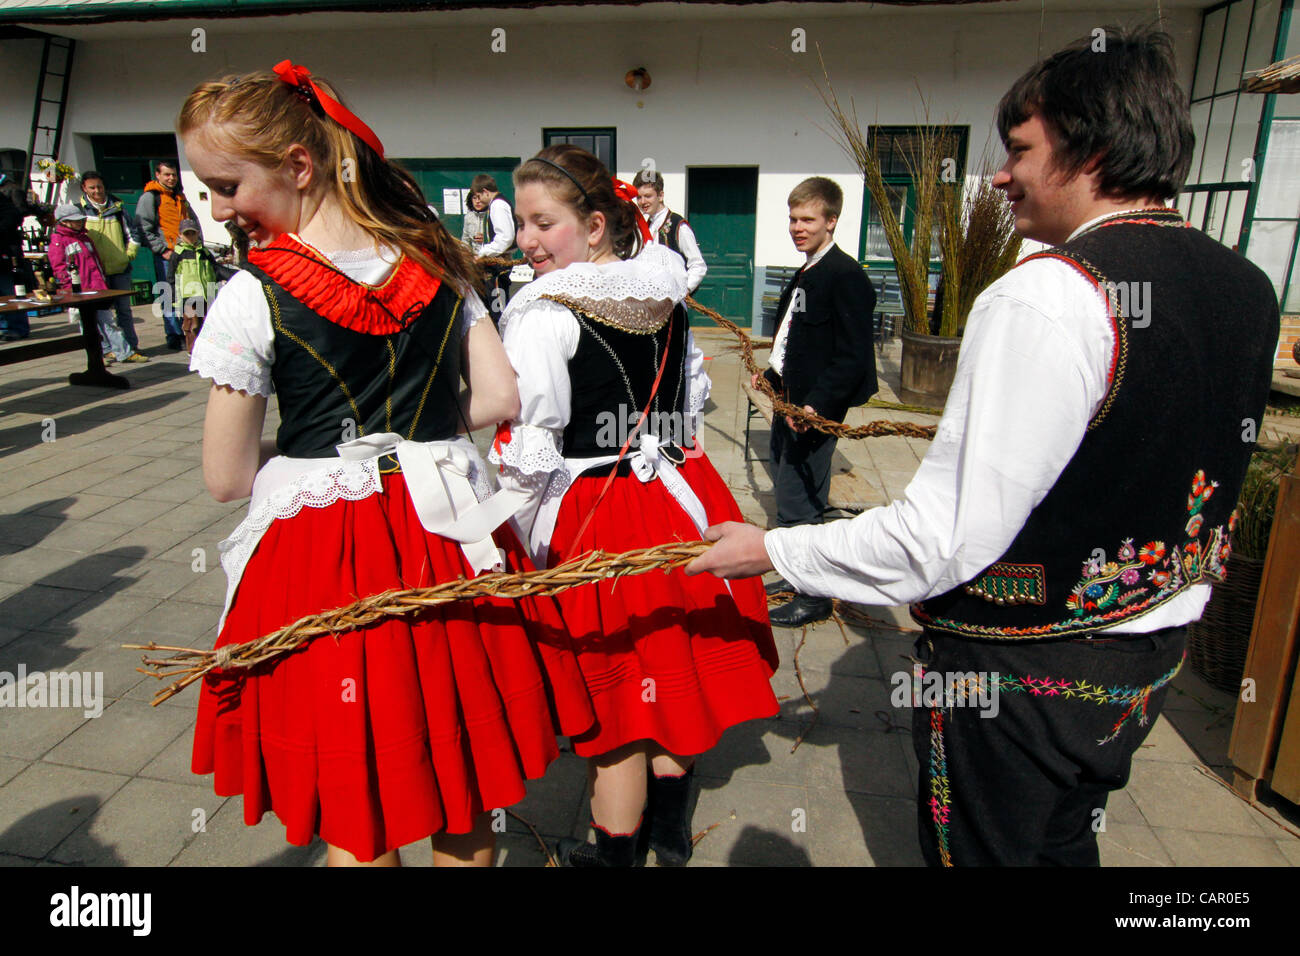 "Boys in folk customs carry a giant ""pomlazka"" (plated willow stems) to whip girls during traditional celebration Stock Photo"